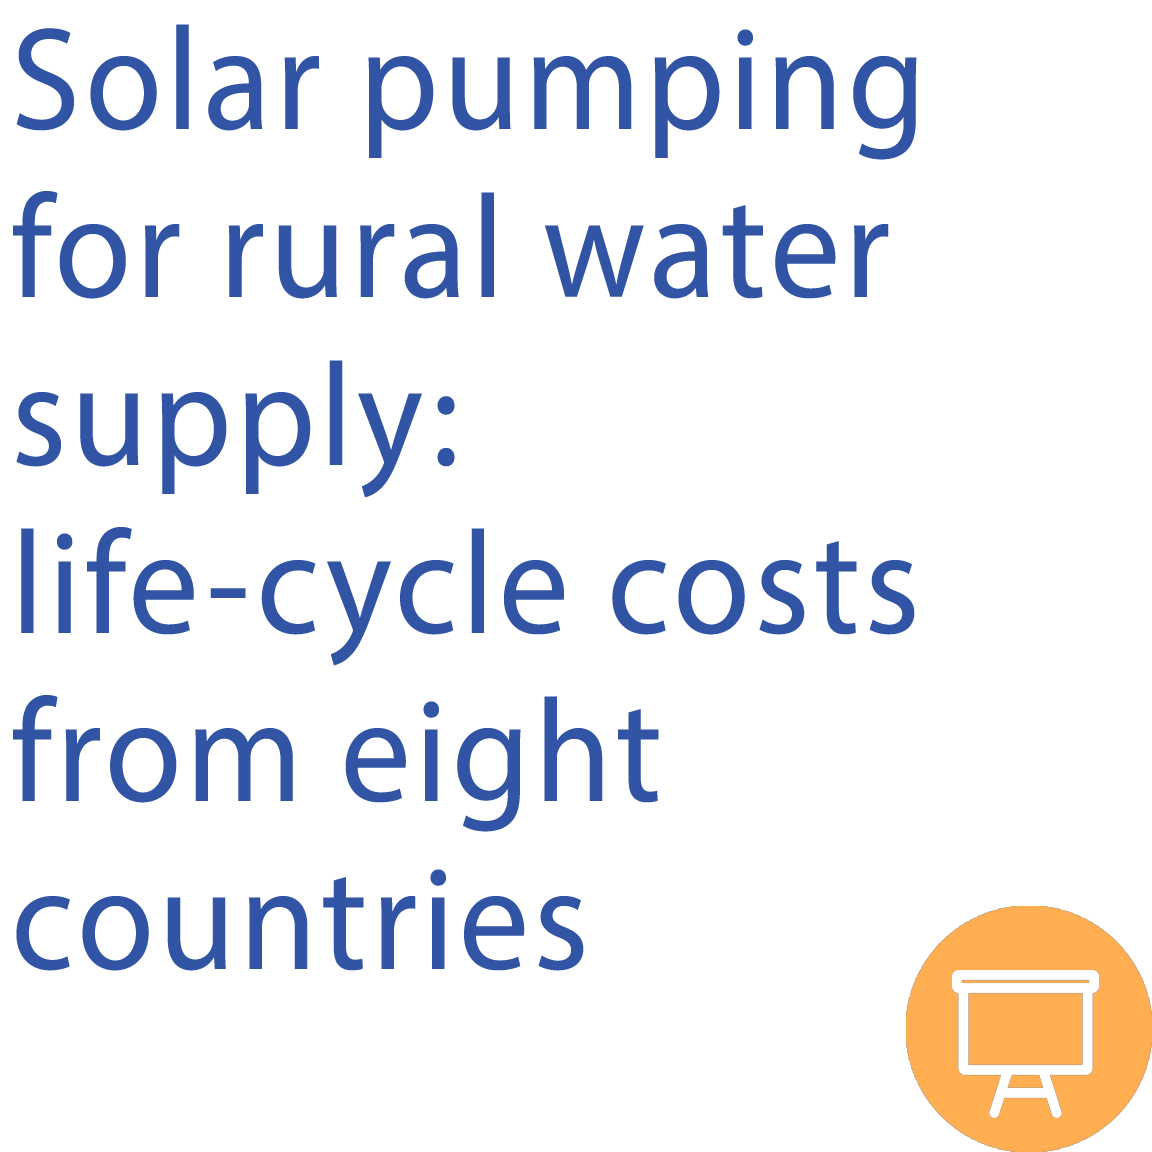 Solar pumping for rural water supply: life-cycle from eight countries